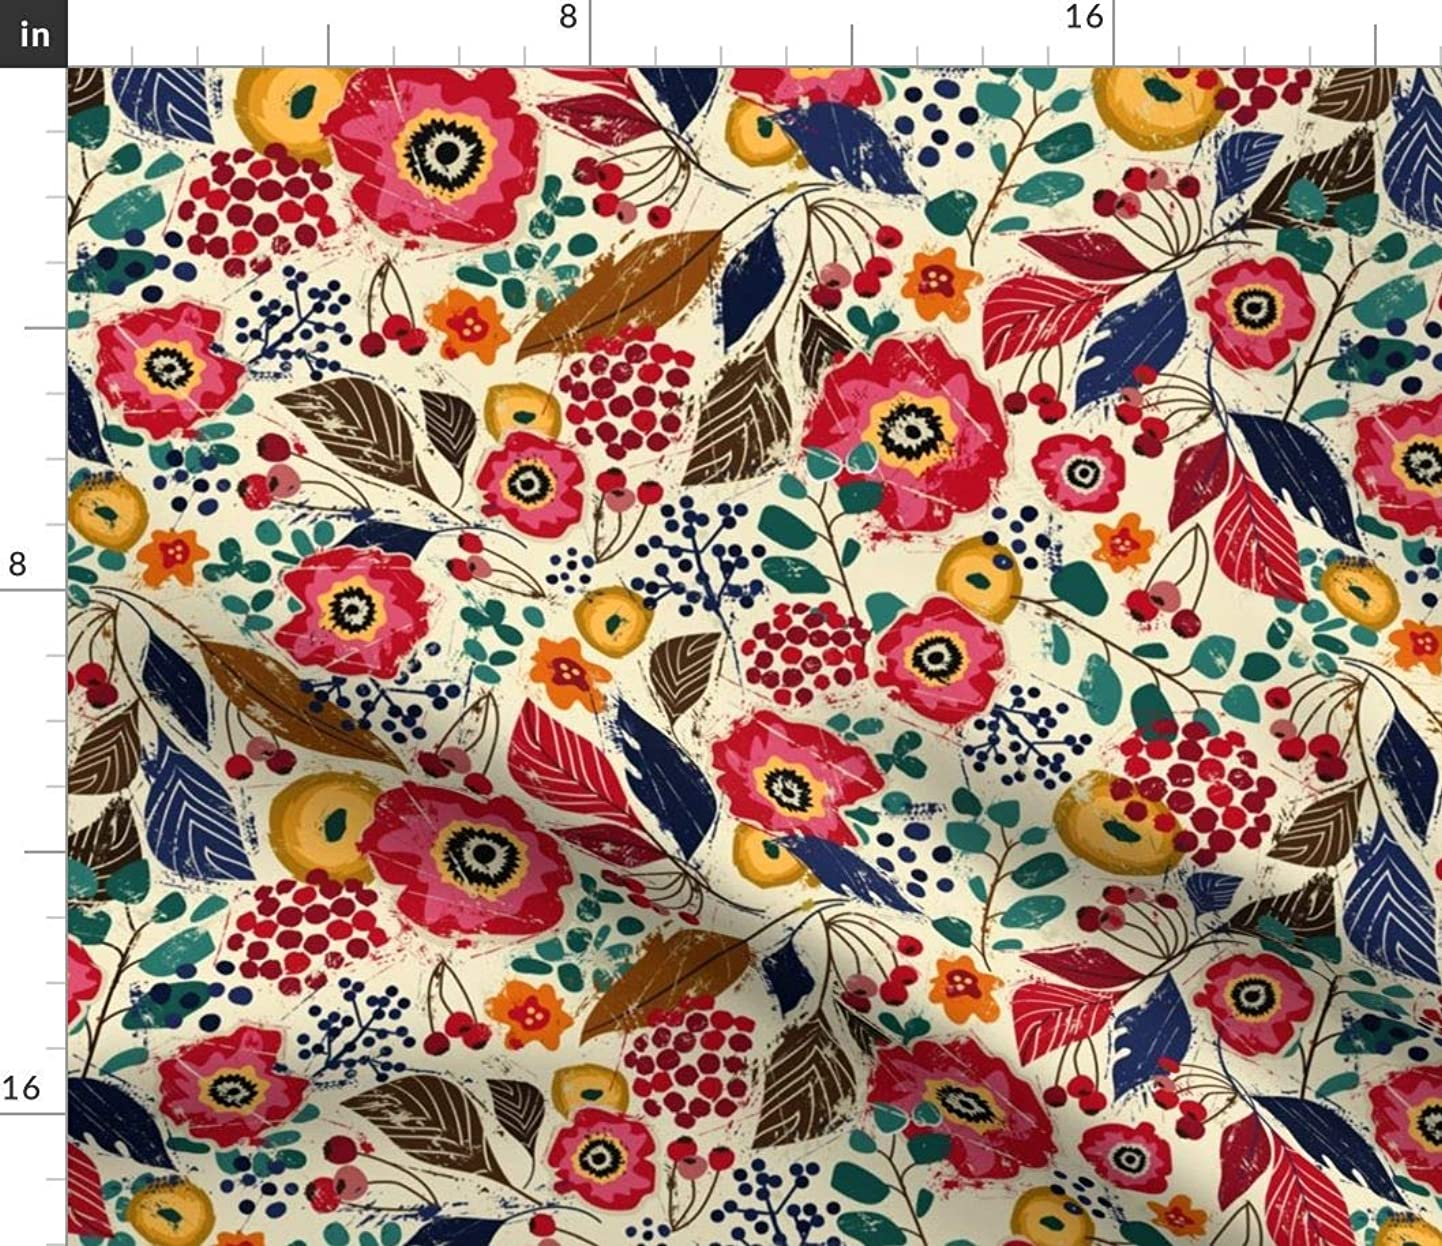 Botanical Fabric - Block Print Floral Flower Leaves Berries Garden Mod Wood Cut Rustic Pattern Red Print on Fabric by The Yard - Eco Canvas for Durable Upholstery Home Decor Accessories vojvaowlywh6